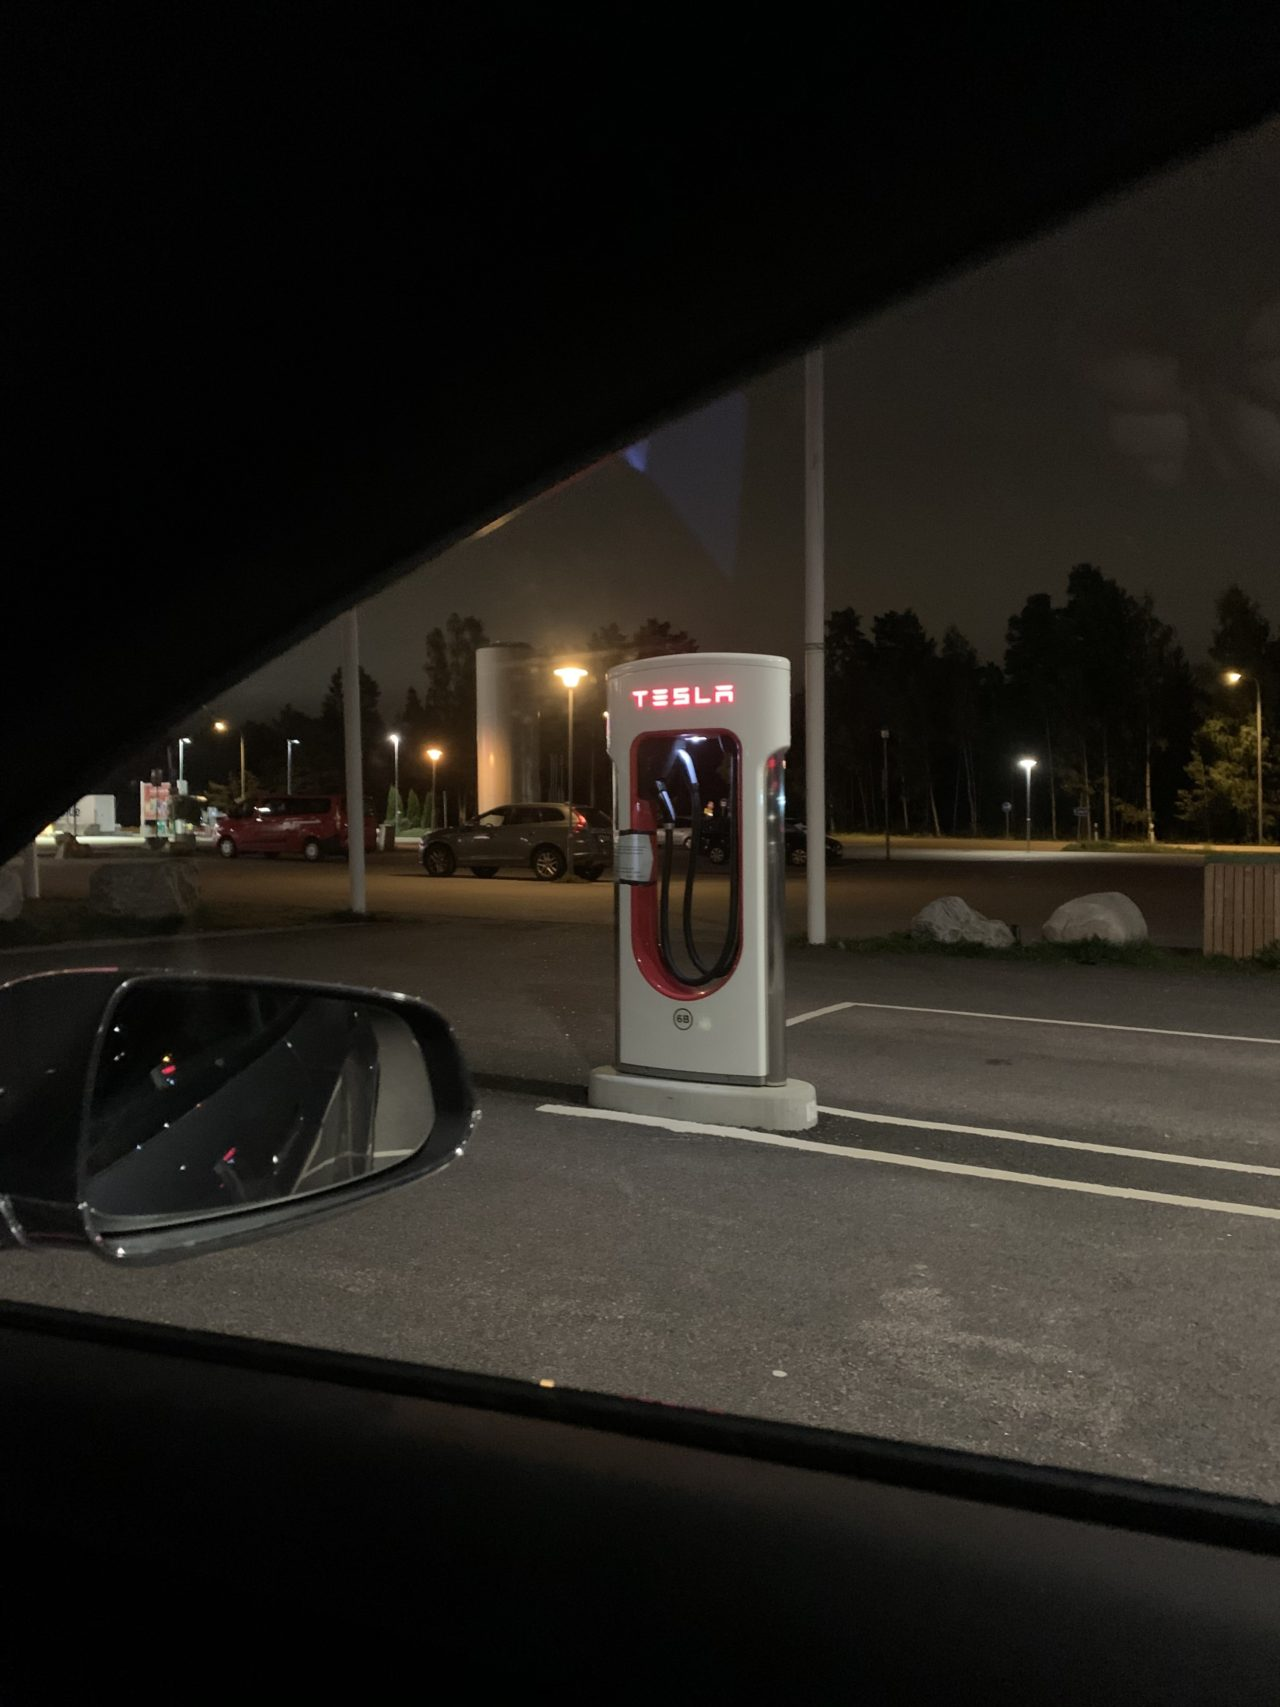 Tesla Supercharger Station Stall From Inside Tesla Car